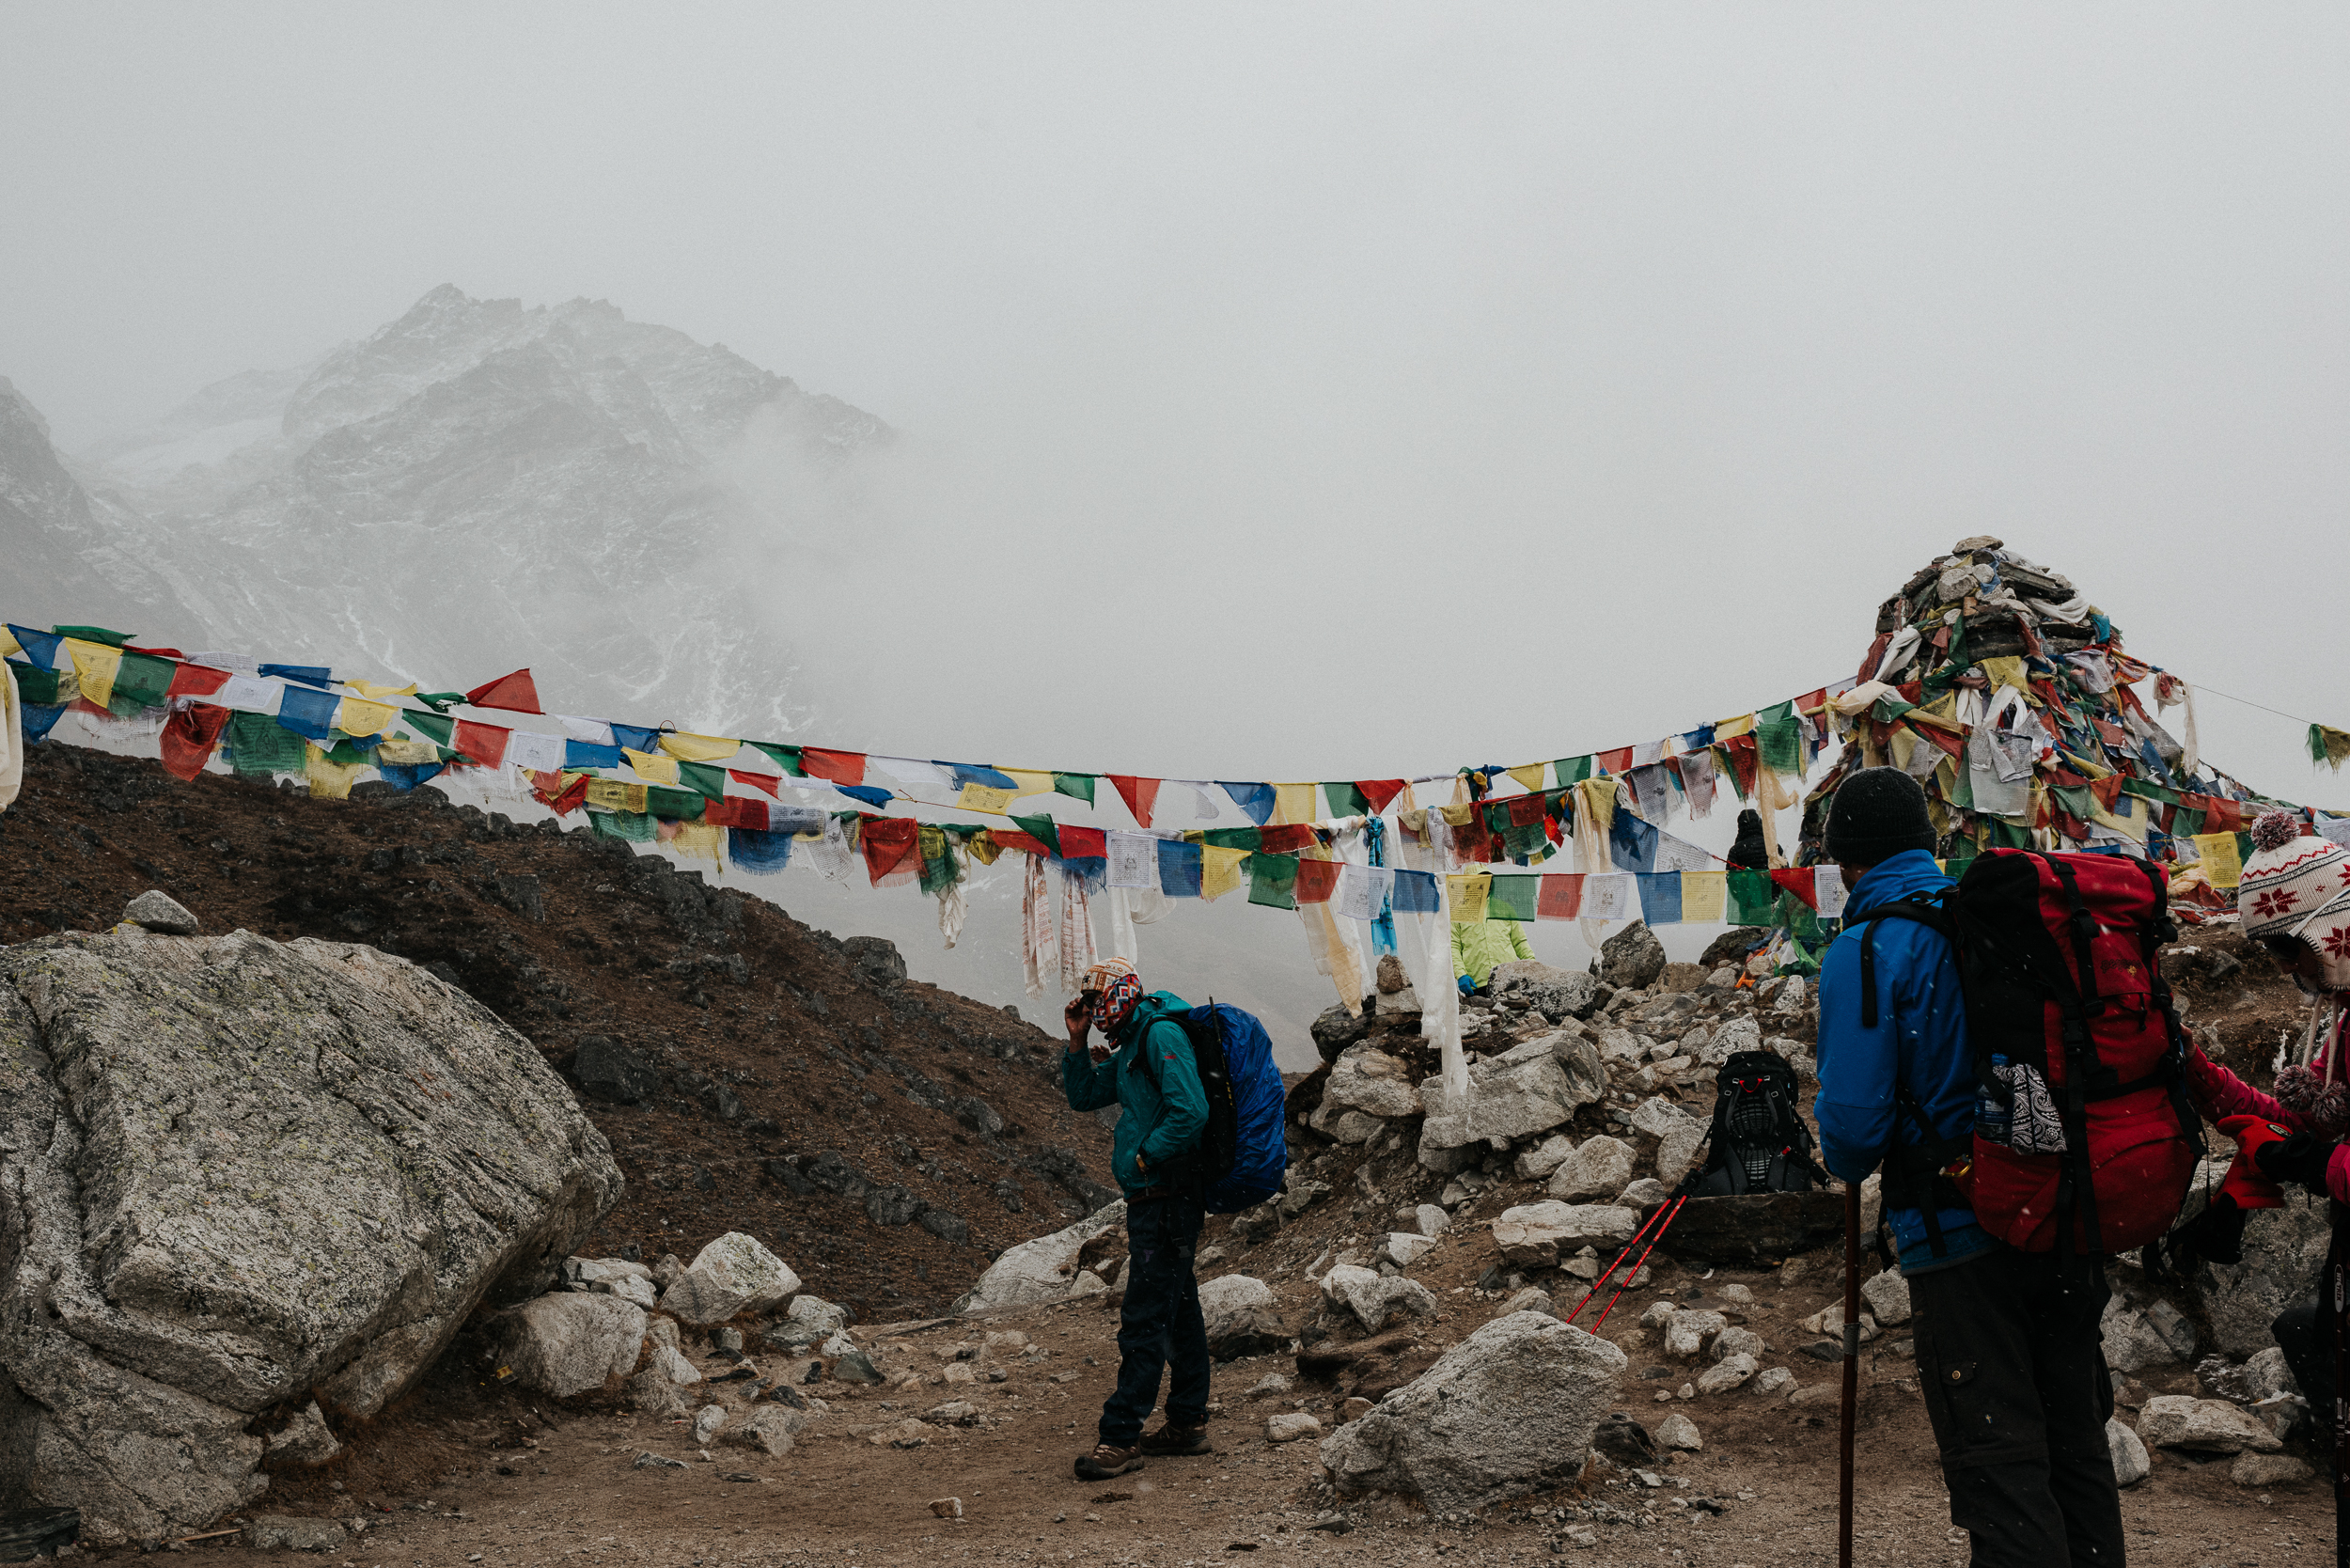 Nepal_EverestBaseCamp_2019_TaraShupe_Photography_DSC_4098.jpg